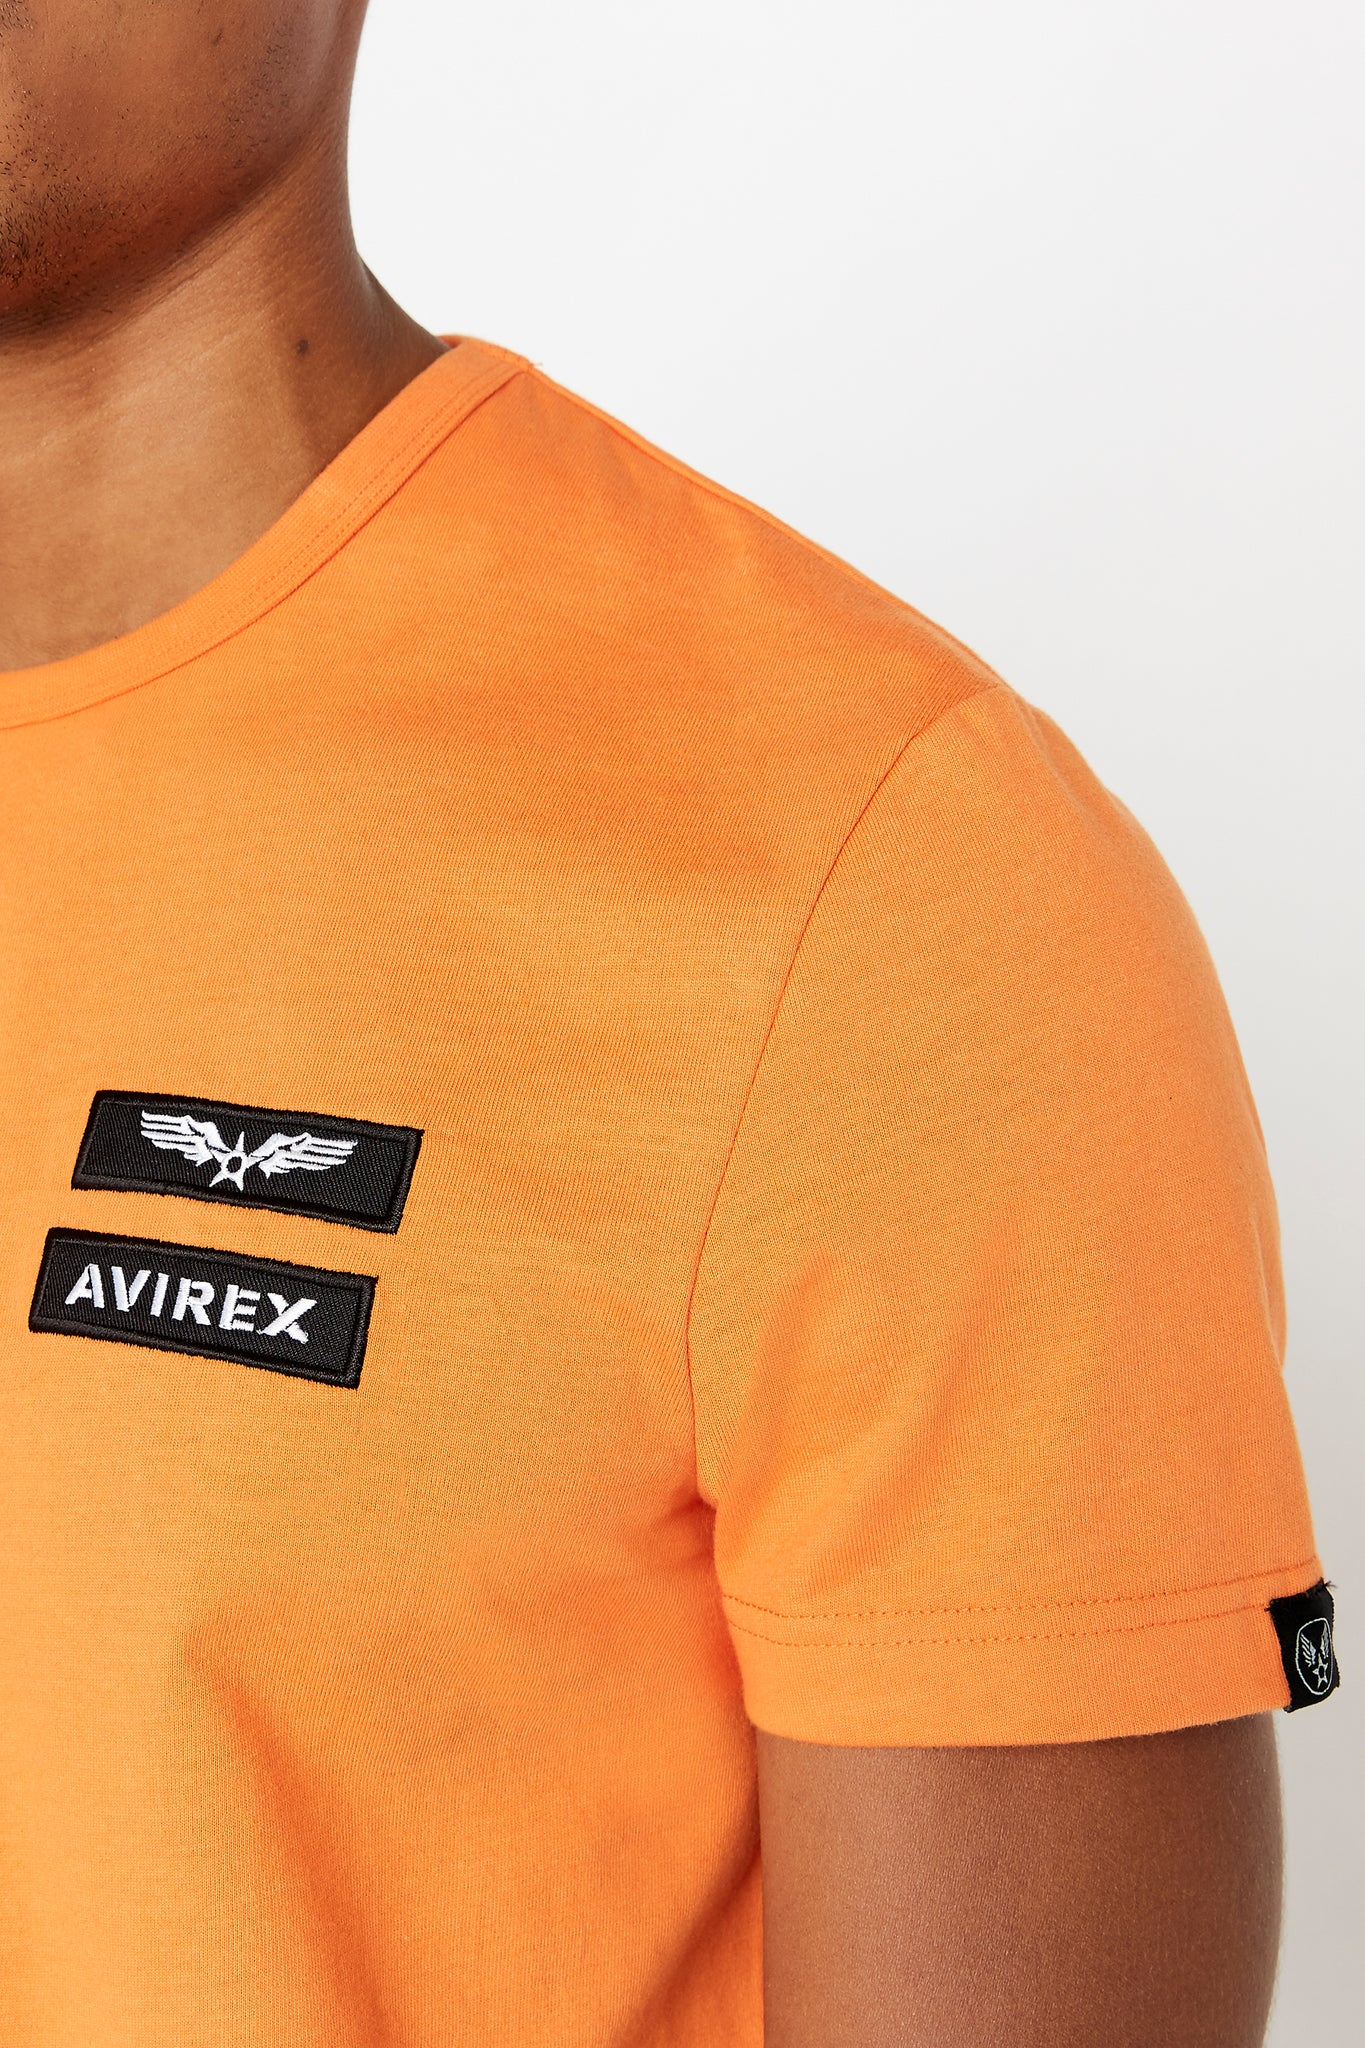 Detailed view of Avirex logo and letters patches on left chest and small logo tag on left sleeve